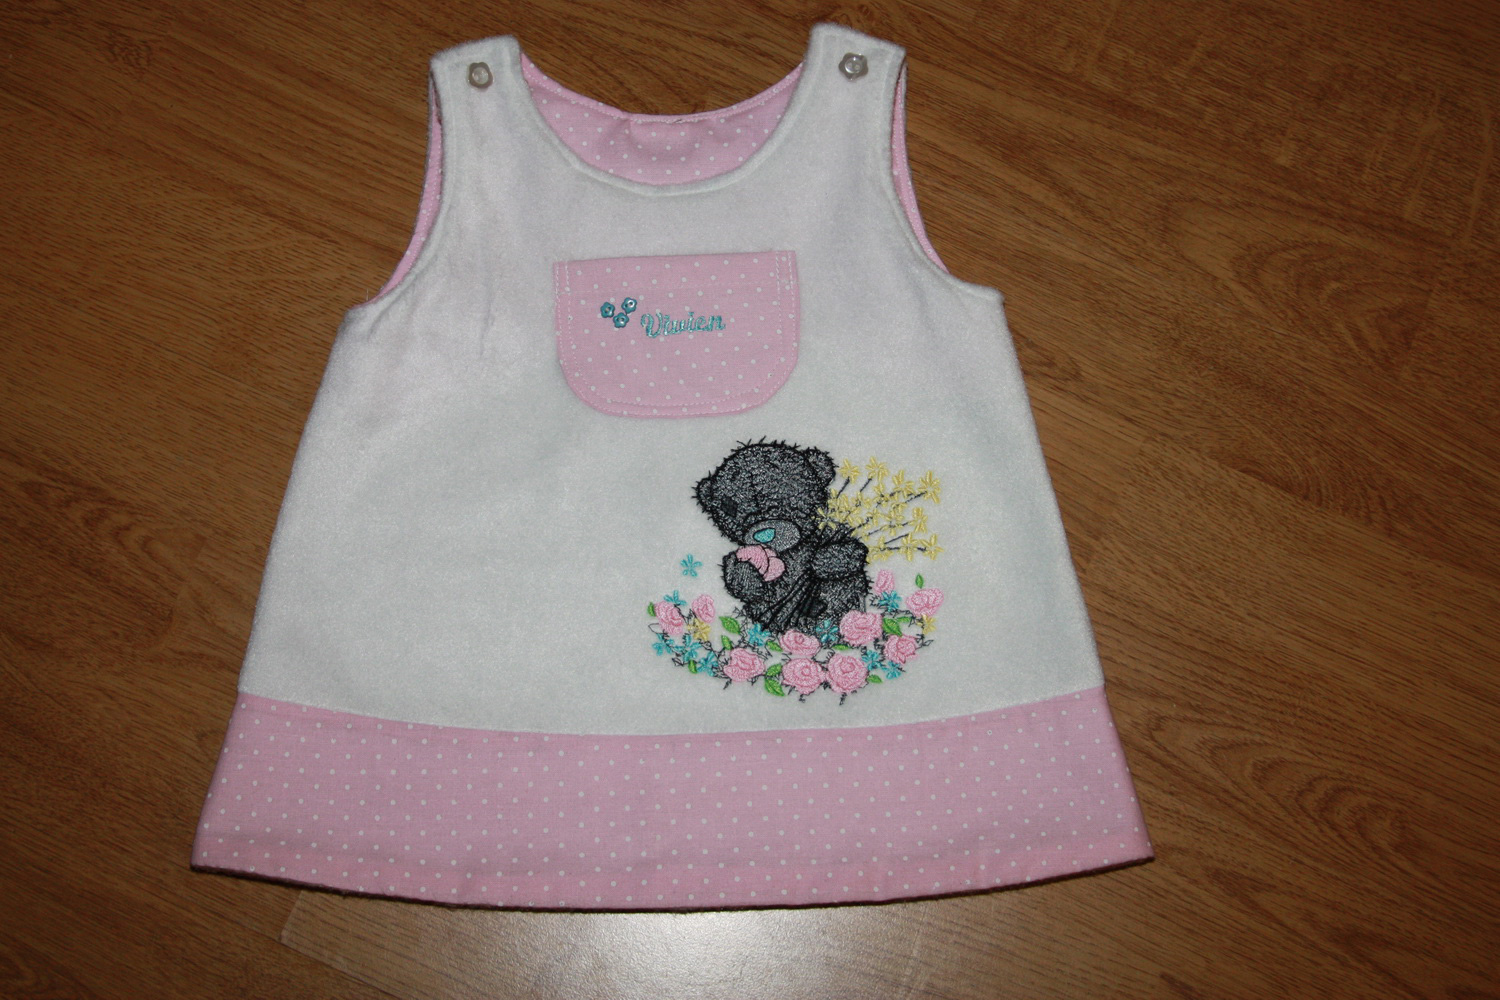 Teddy bear and the sea of flowers design on embroidered white dress